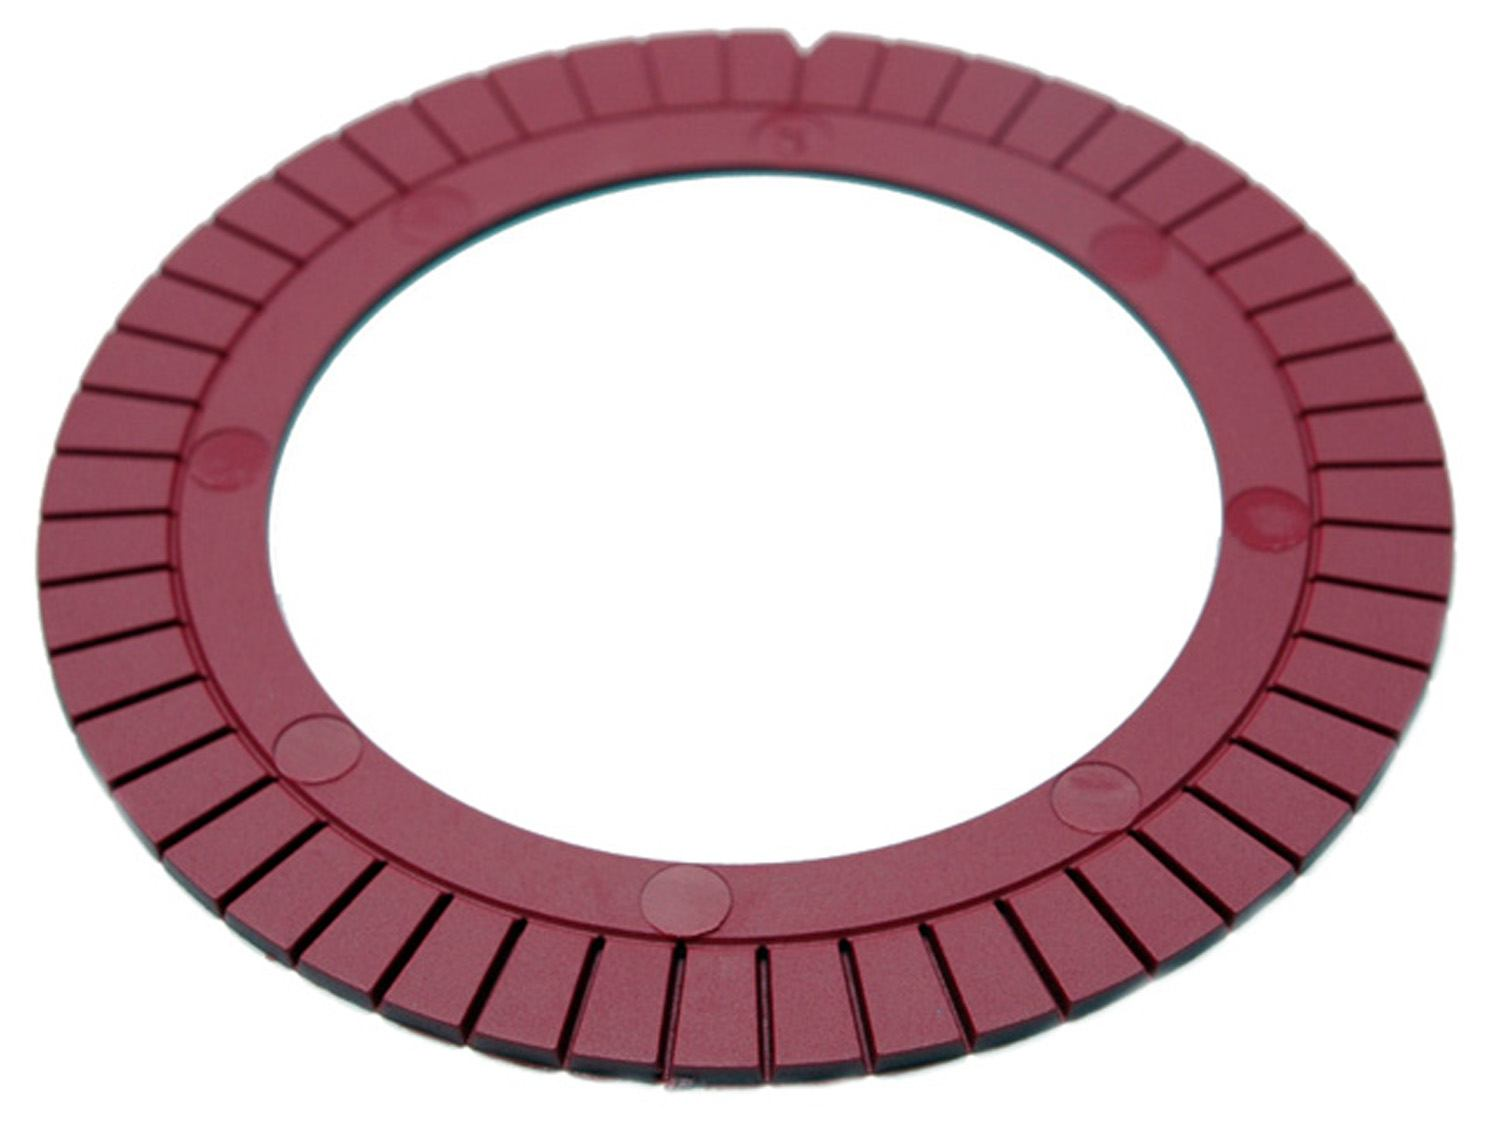 ACDELCO GOLD/PROFESSIONAL - Alignment Shim (Rear) - DCC 45K13130